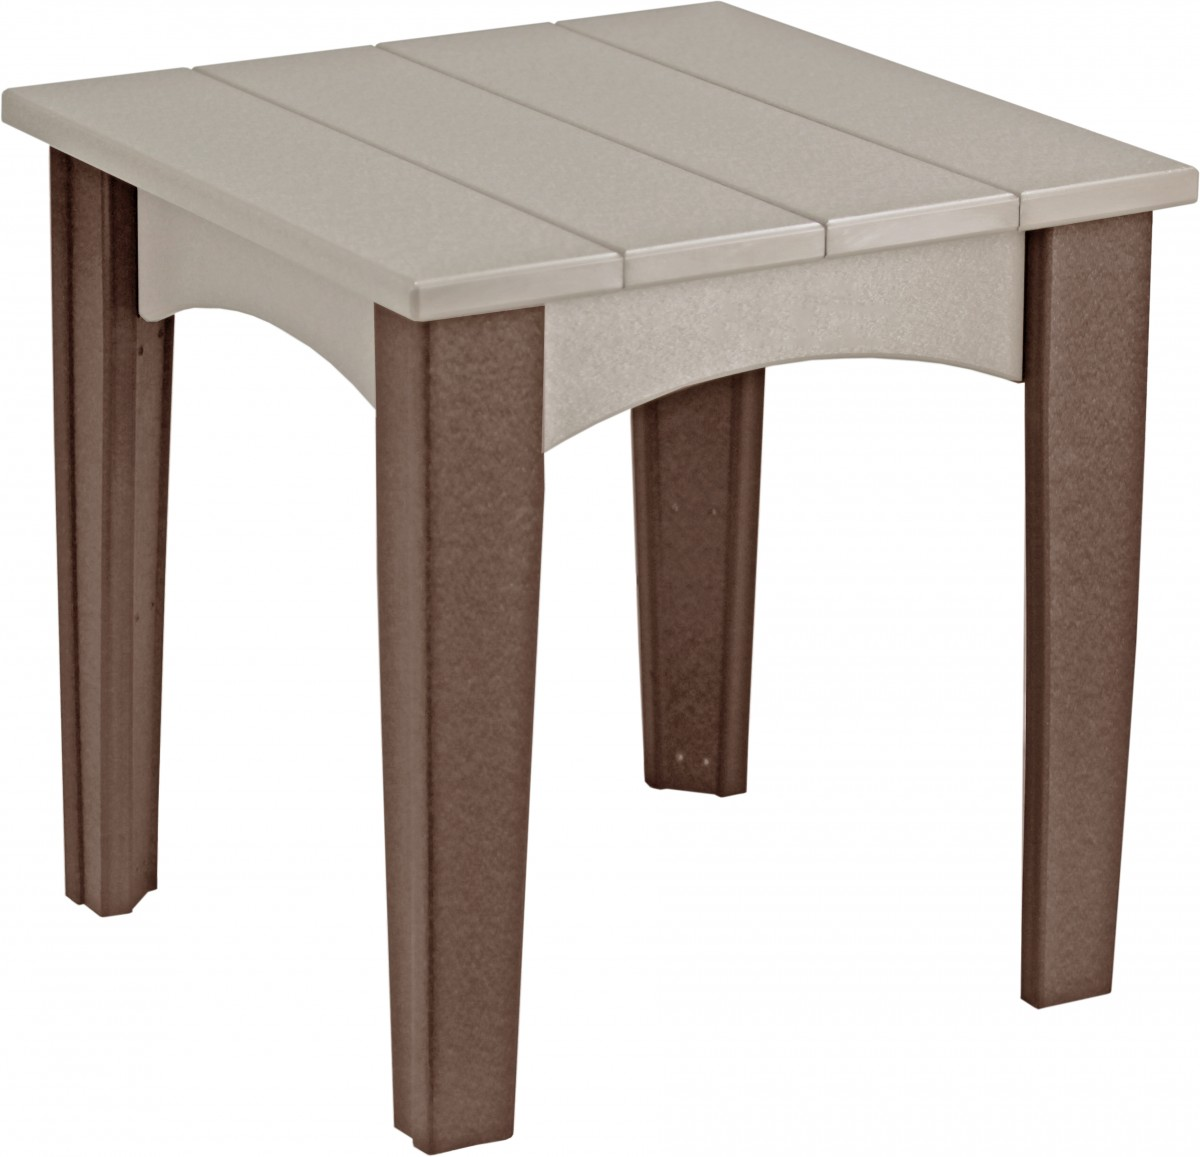 Luxcraft Island Square End Table In Recycled Plastic